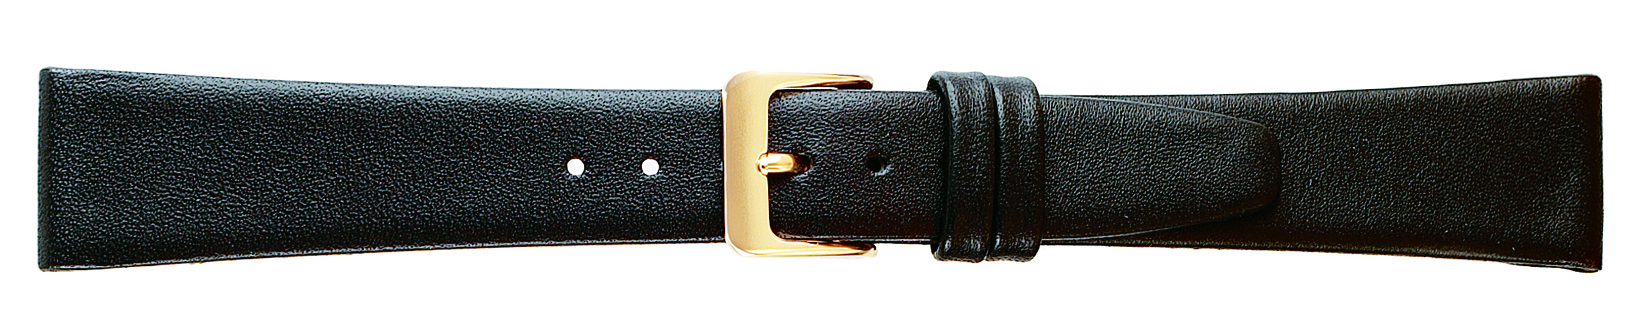 10MM Leather Band Black Smooth Calf-0